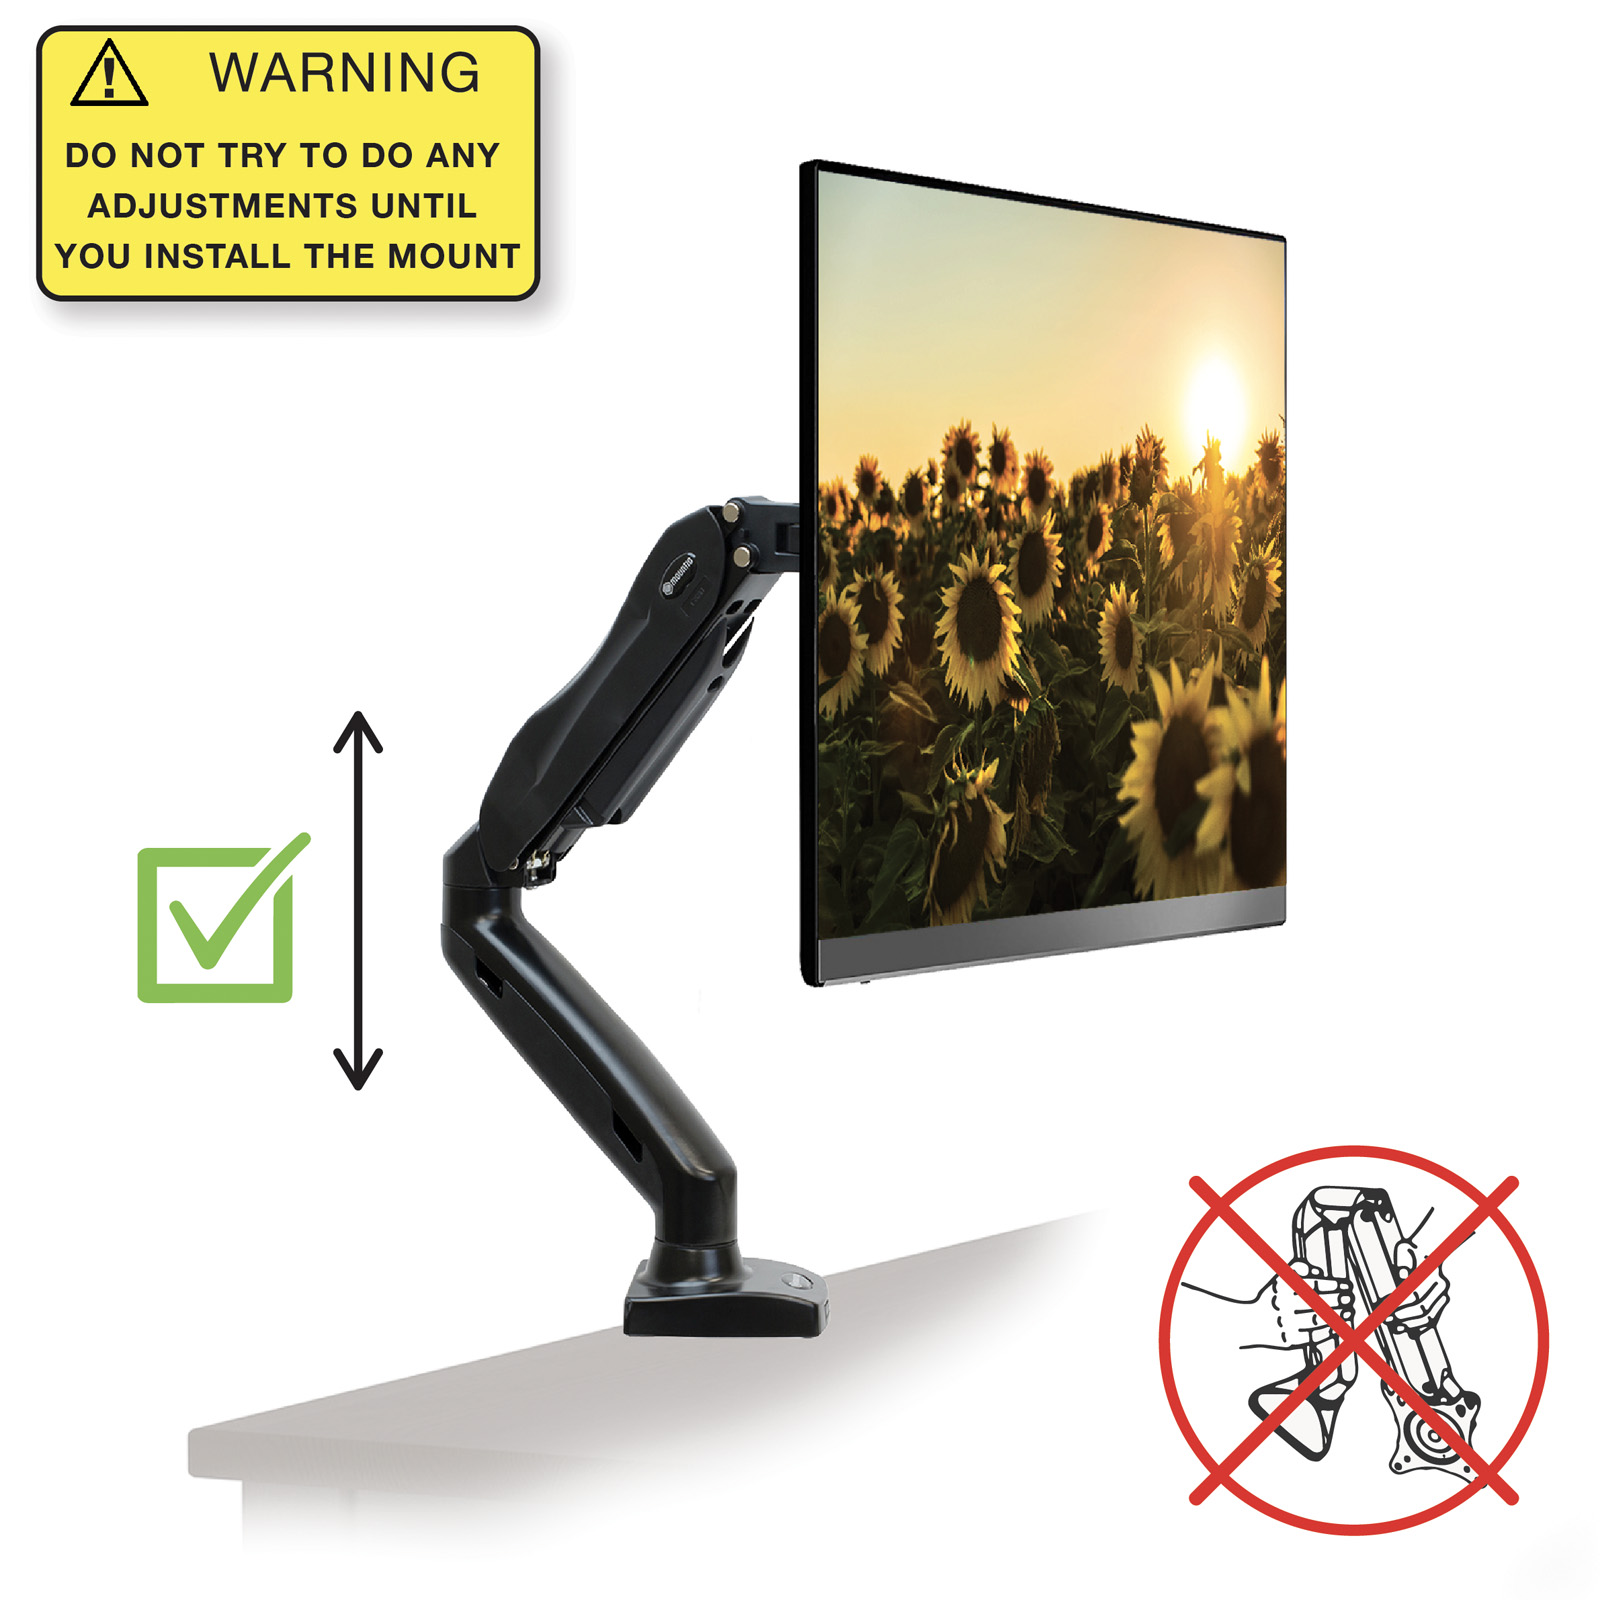 "Mountio Full Motion LCD Monitor Arm - Gas Spring Desk Mount Stand for  Screens up to 27"" - Walmart.com"